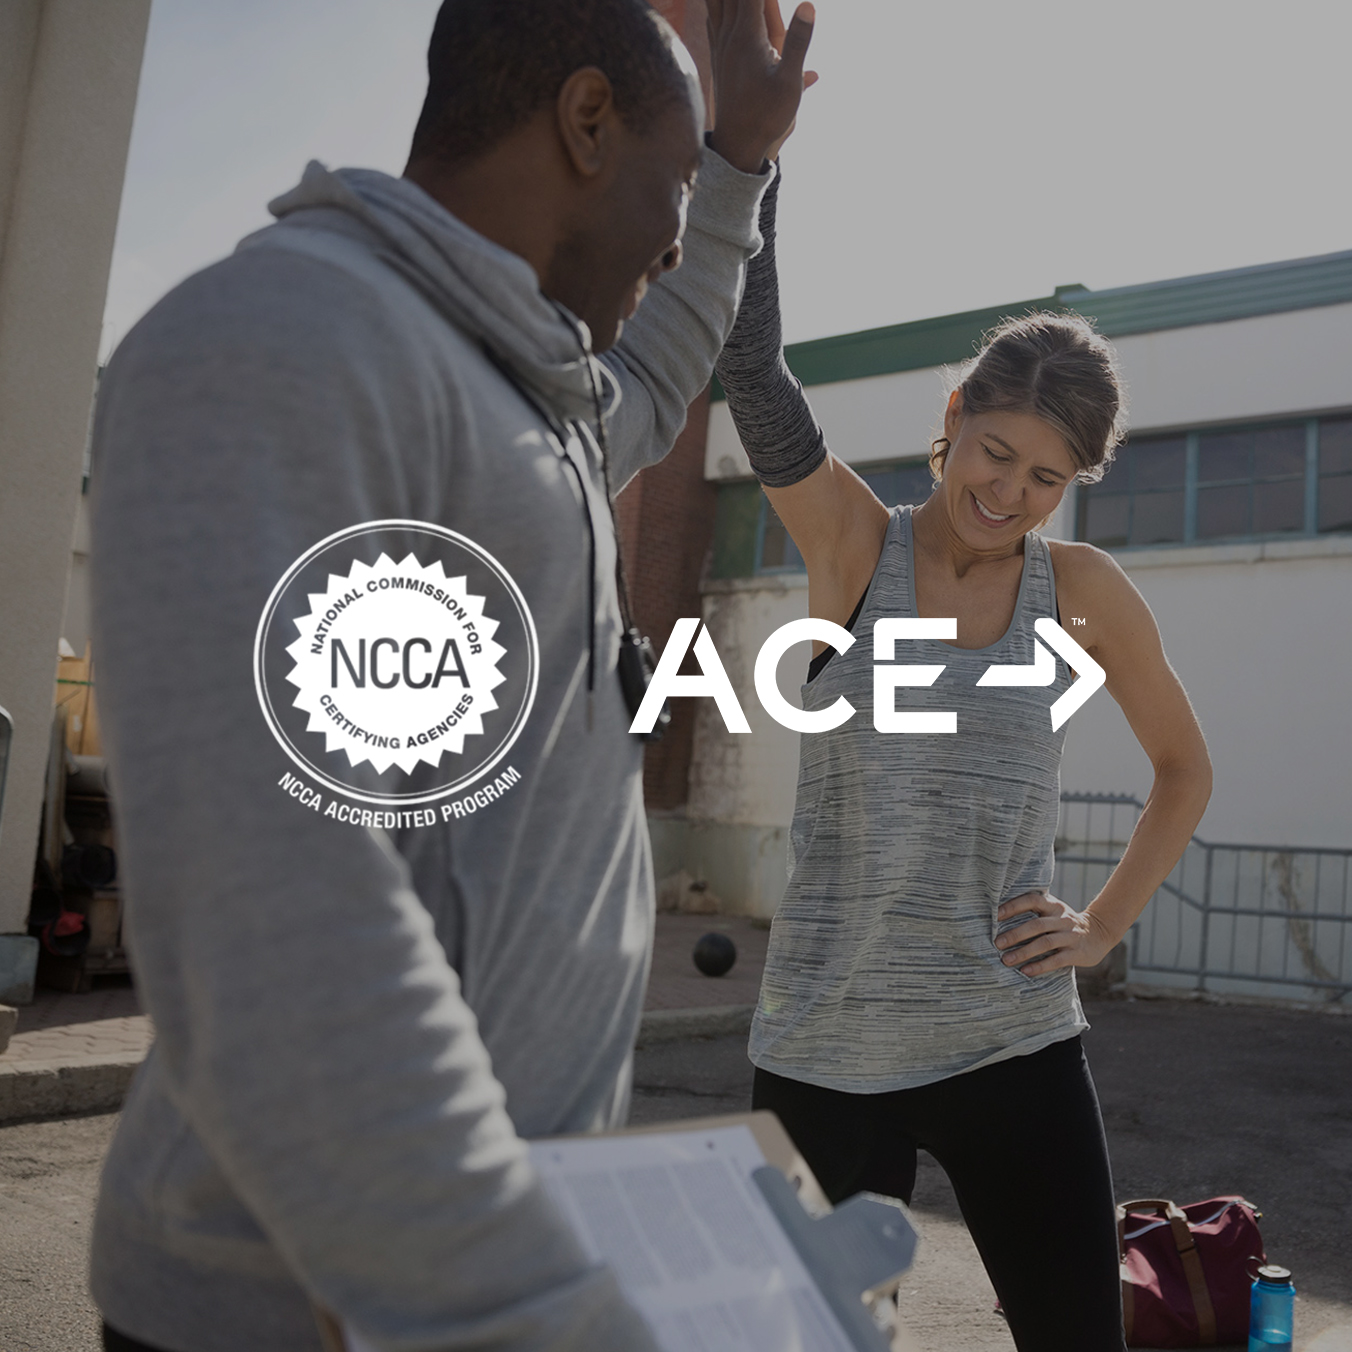 ncca ace certification